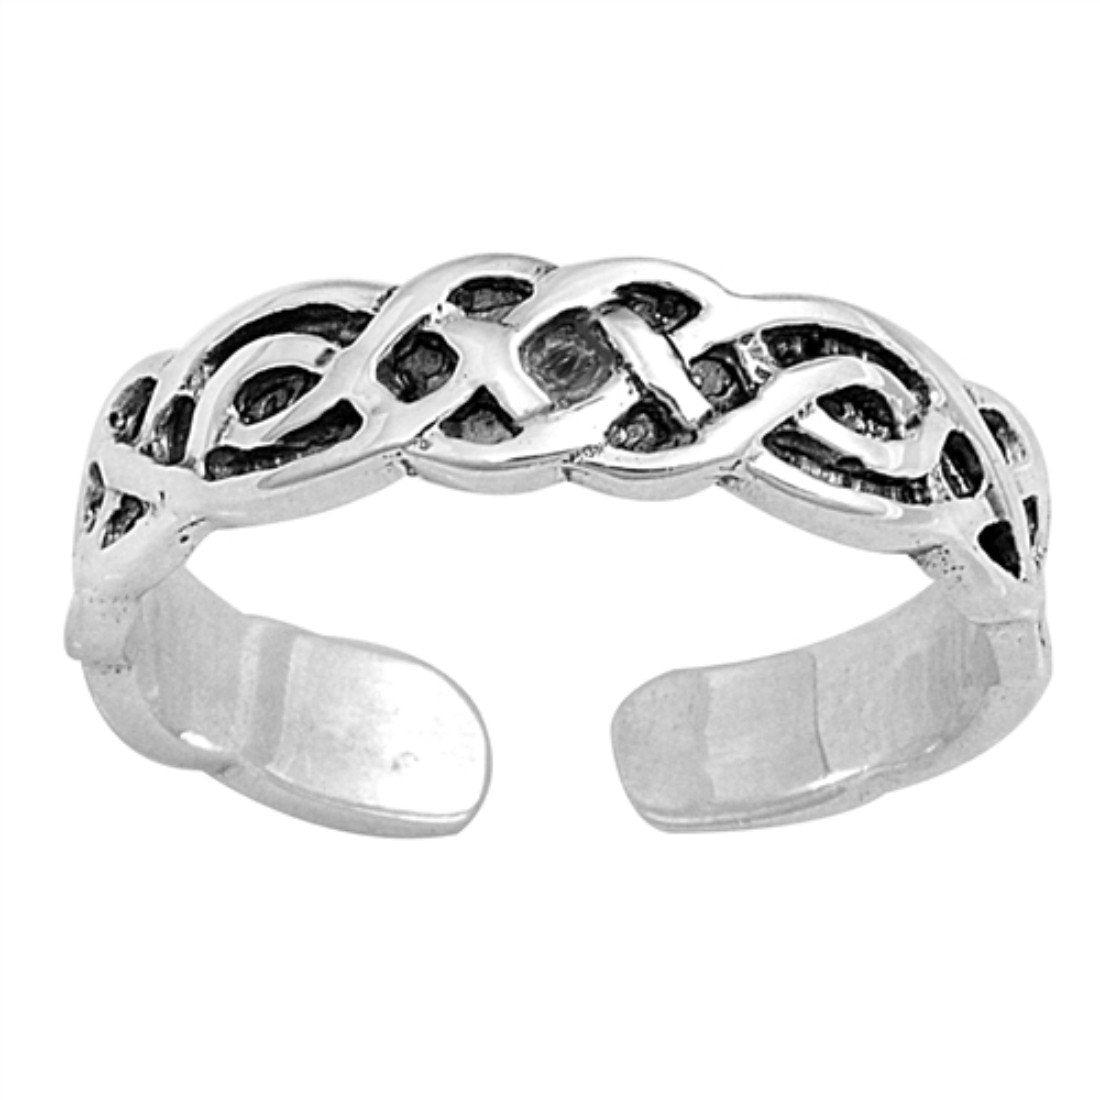 Celtic Silver Toe Ring Adjustable Band 925 Sterling Silver (4mm)